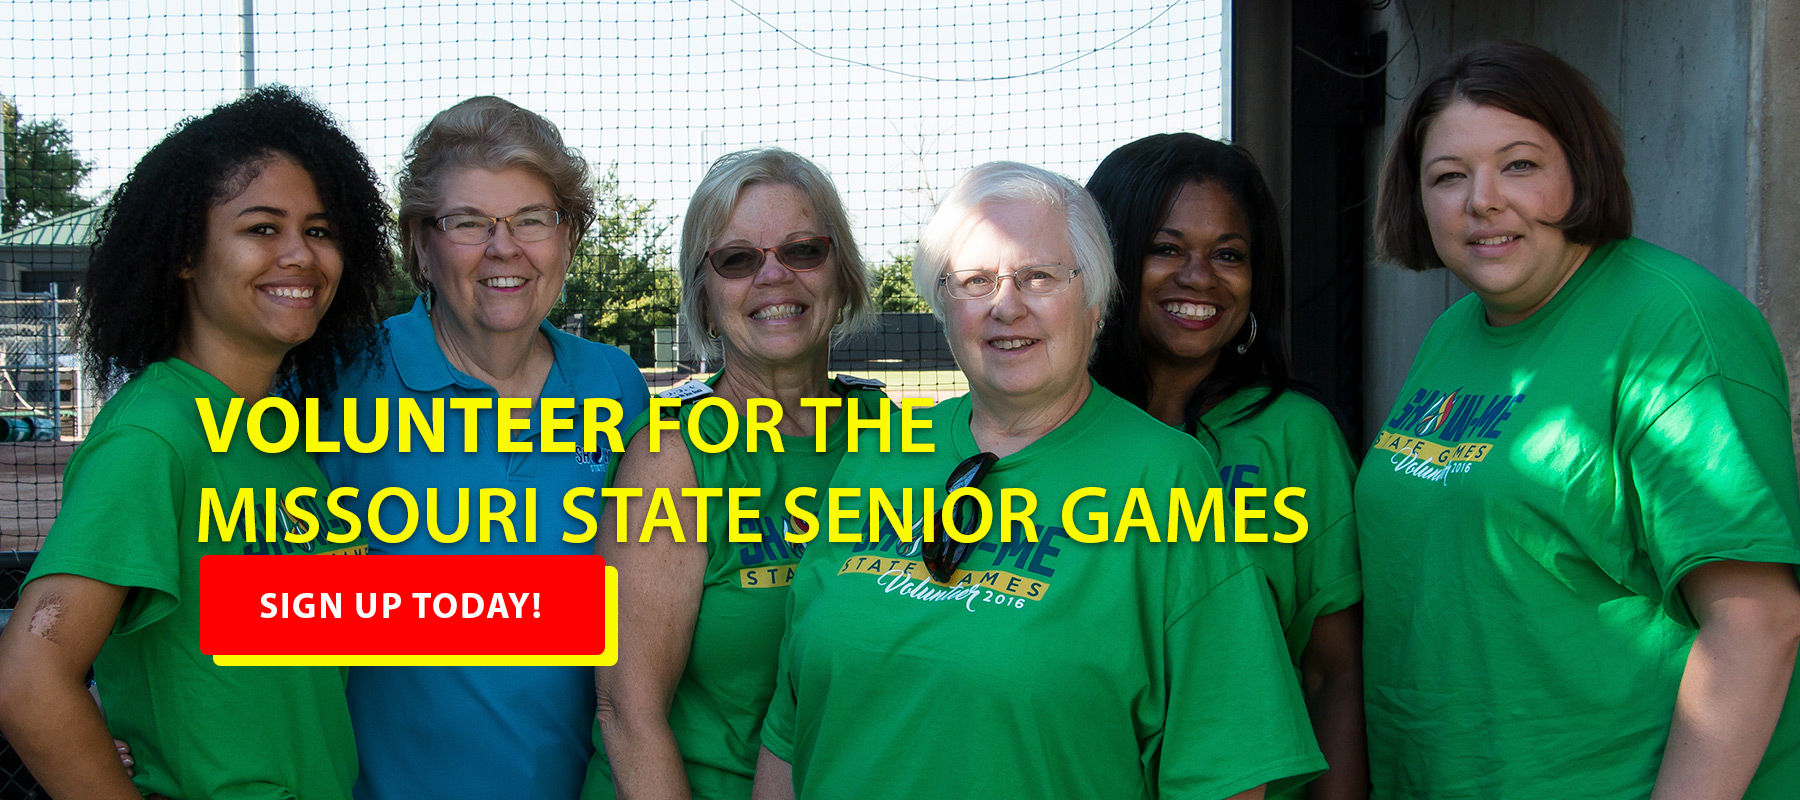 Volunteer for the Missouri State Senior Games